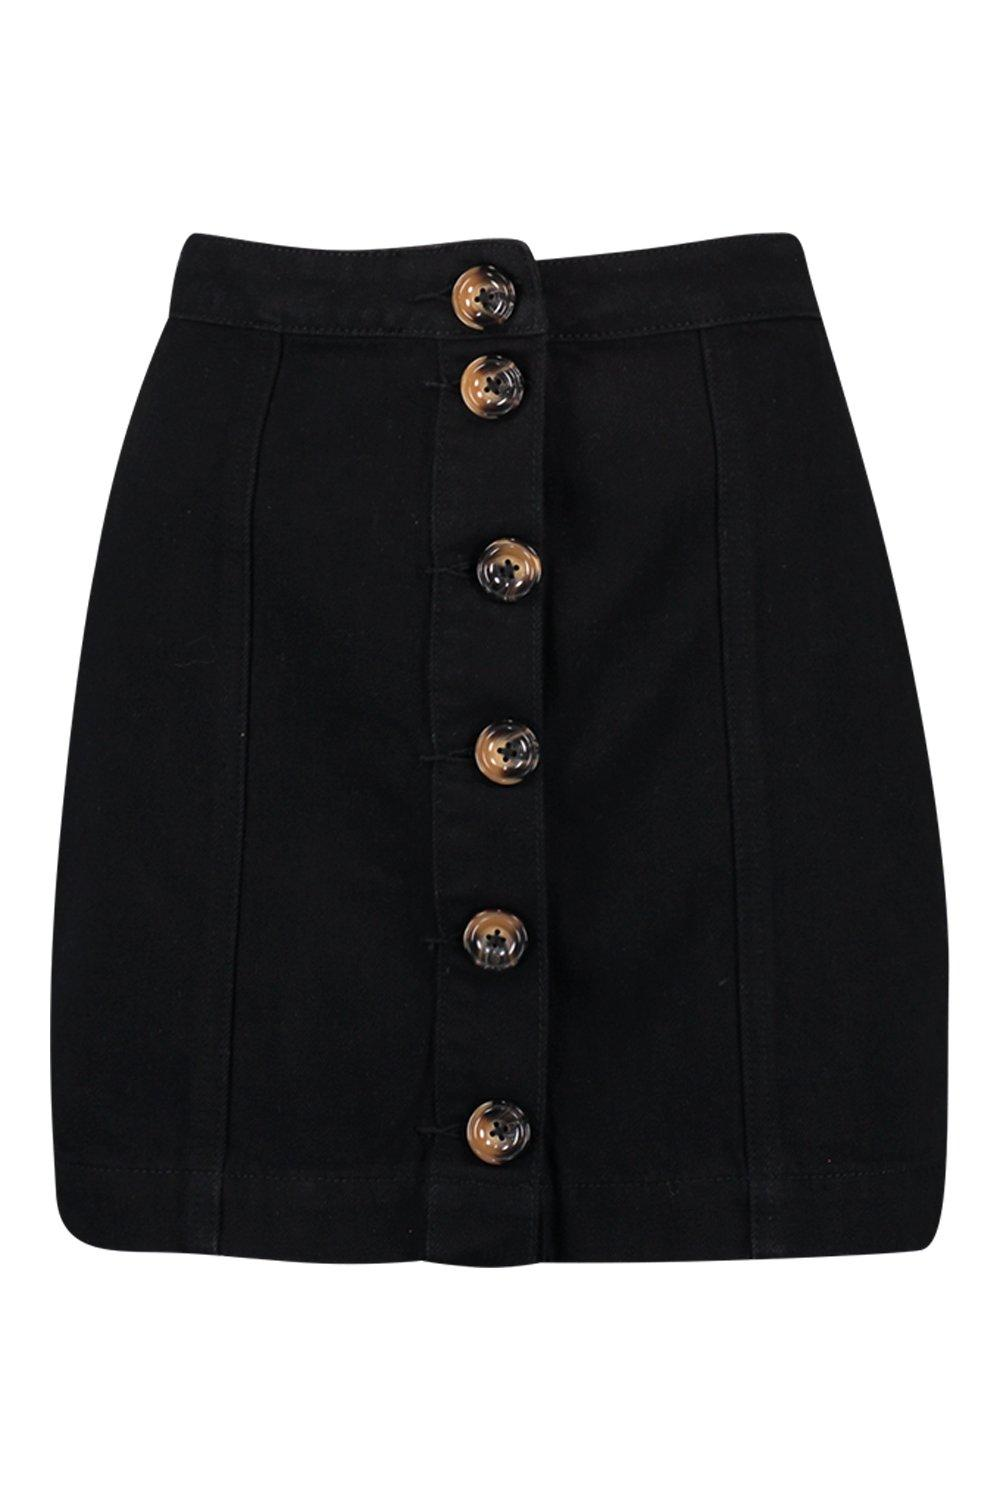 Horn Mock black Skirt Button Denim 1FdFq